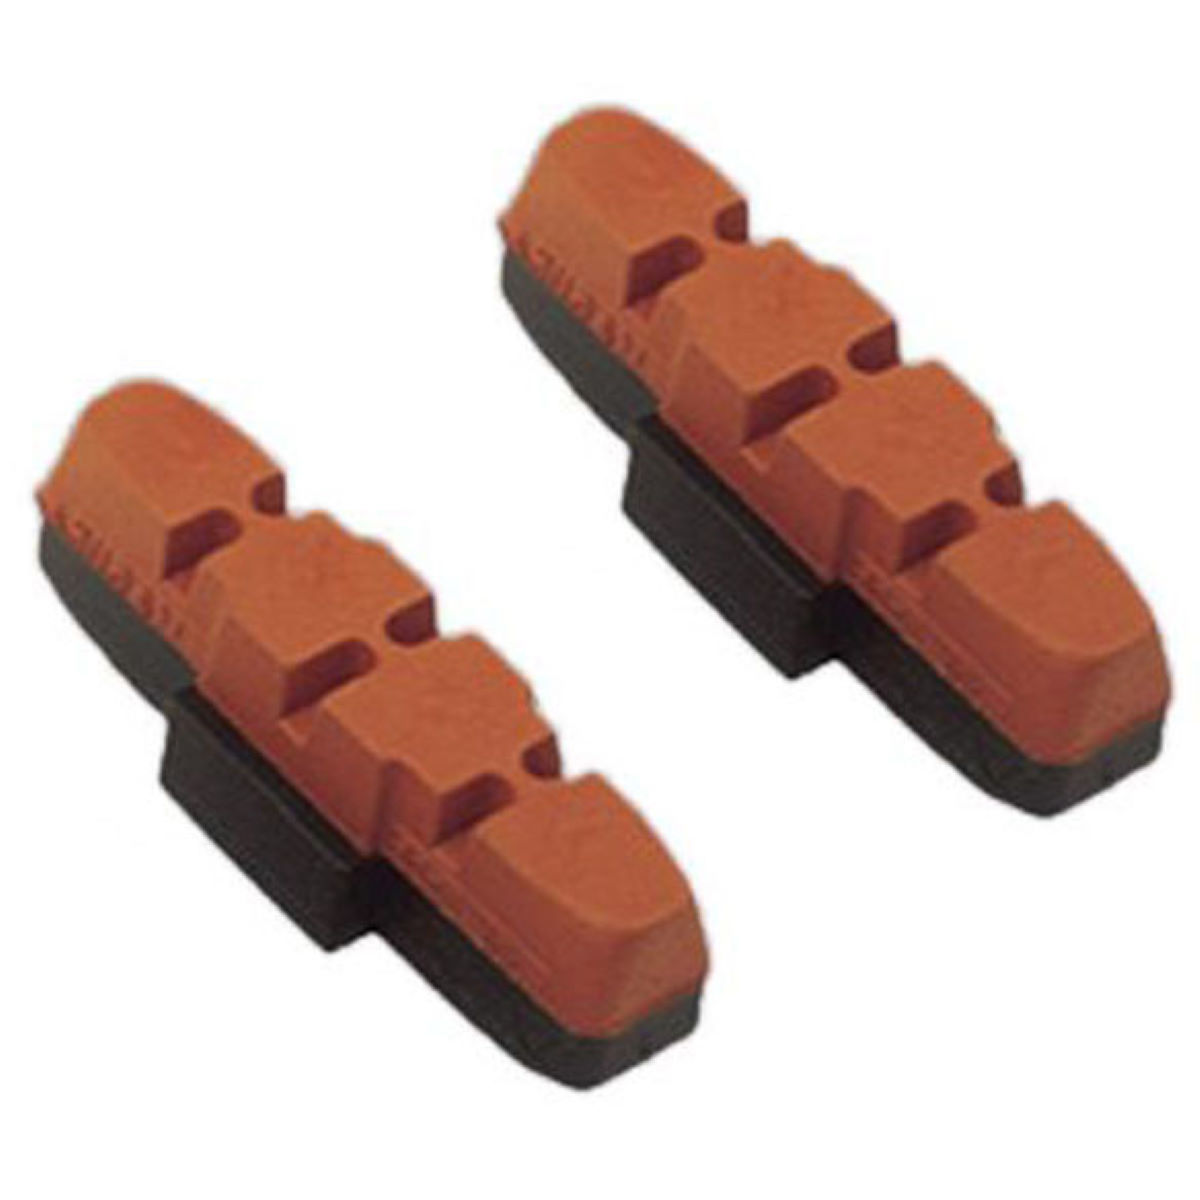 Magura Pads Hs33-hs11 - One Size Red Race  Rim Brake Pads